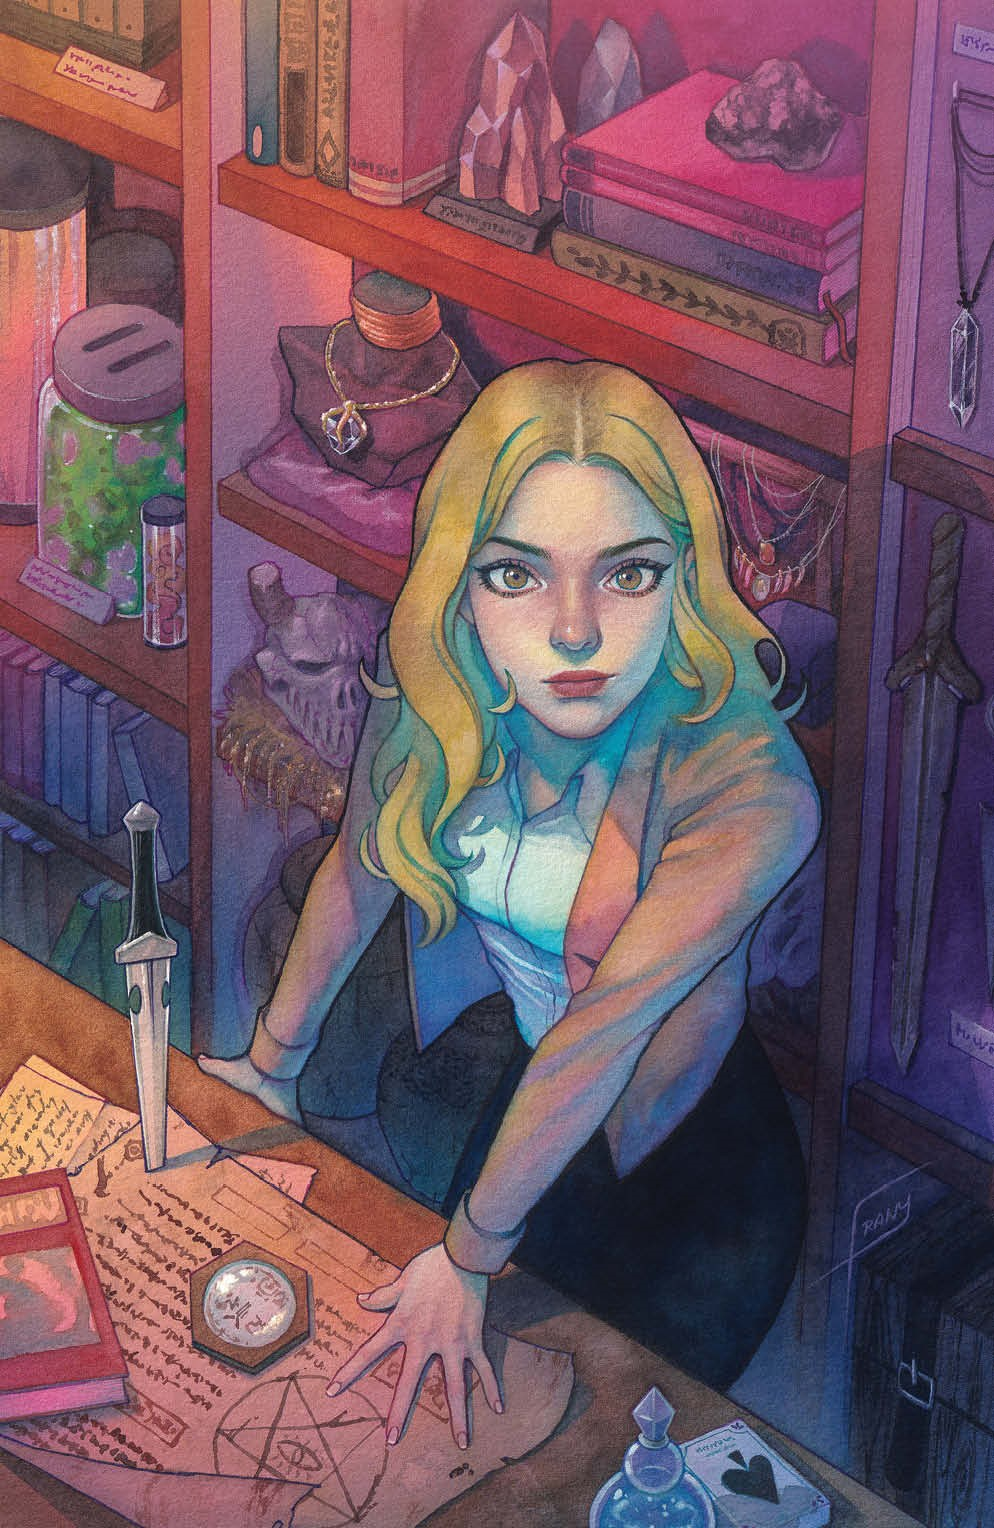 Buffy_028_Cover_C_Variant_Undressed ComicList Previews: BUFFY THE VAMPIRE SLAYER #28